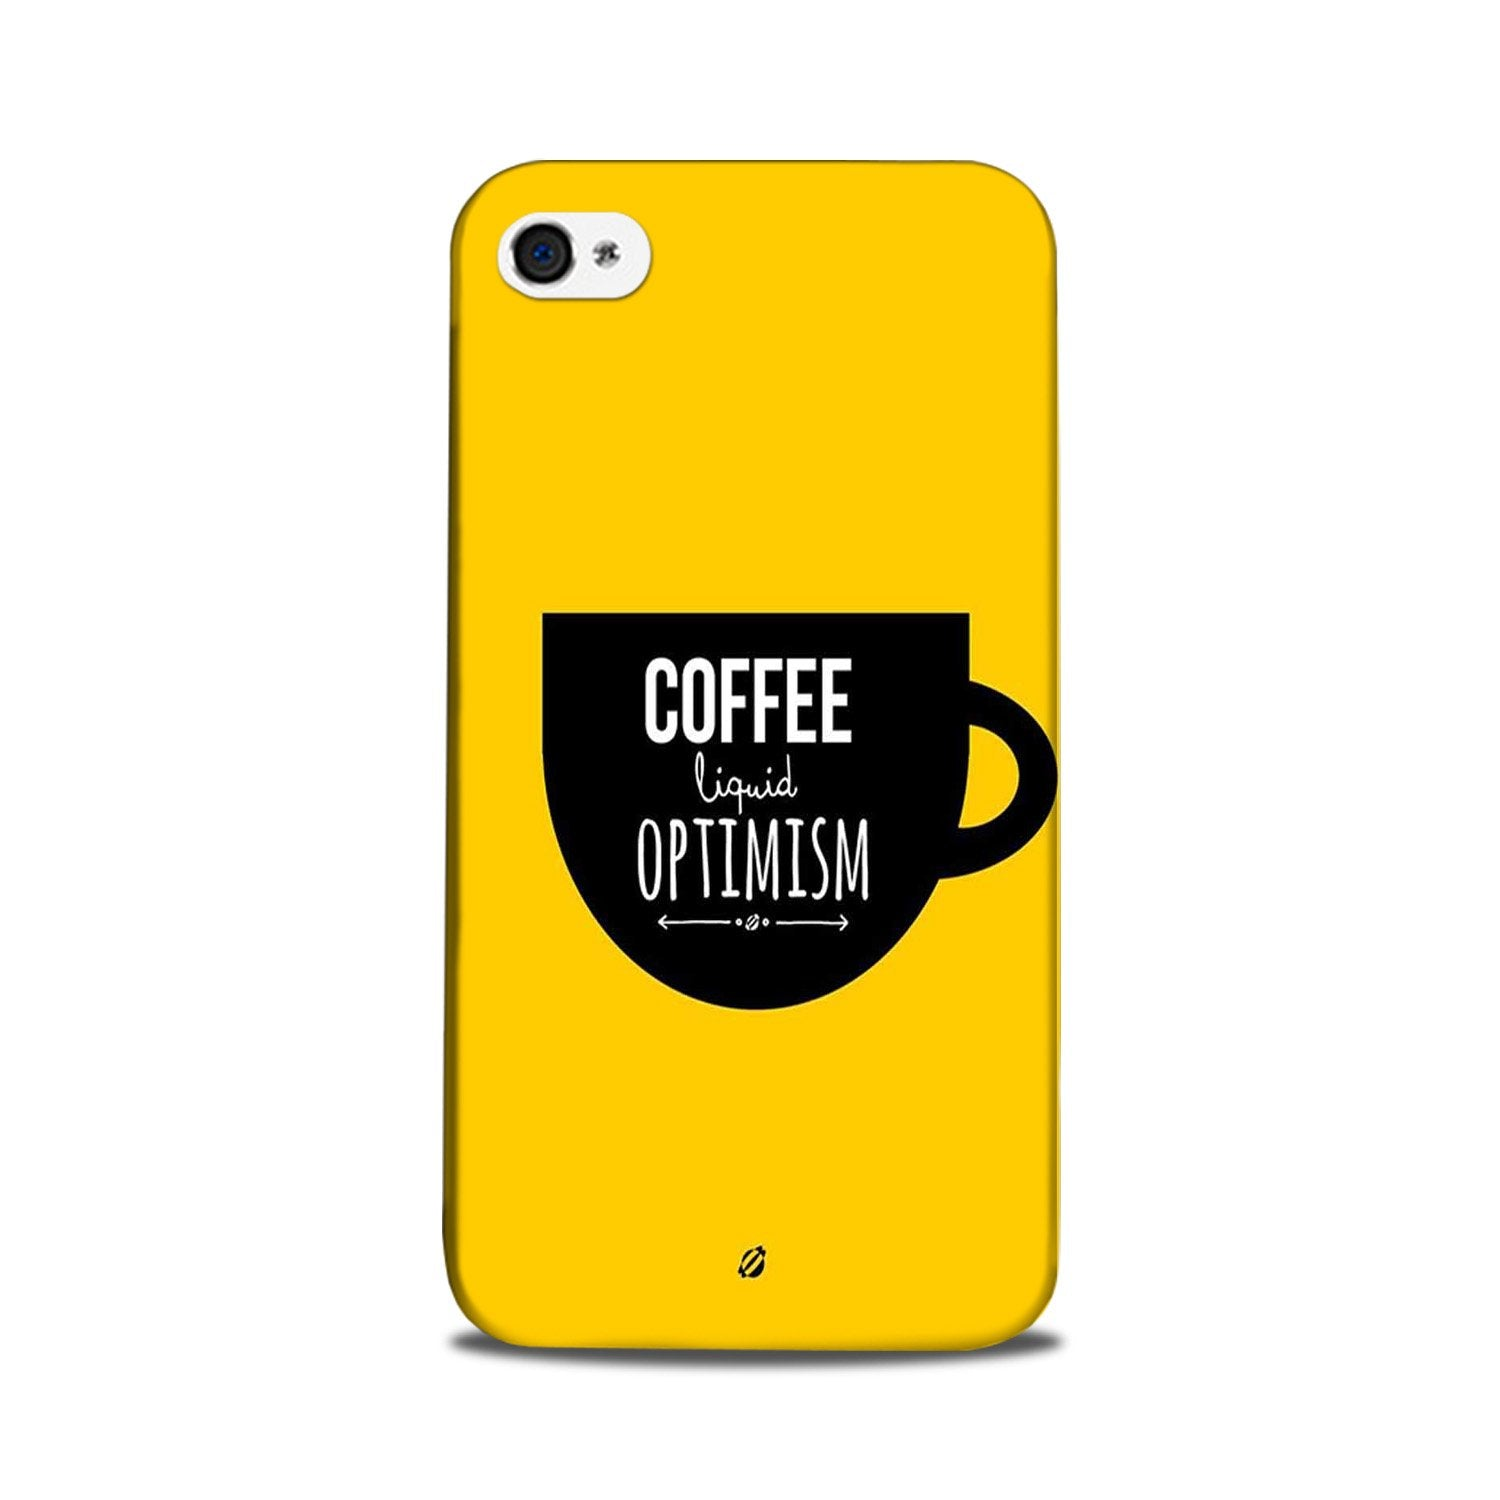 Coffee Optimism Mobile Back Case for iPhone 5/ 5s  (Design - 353)